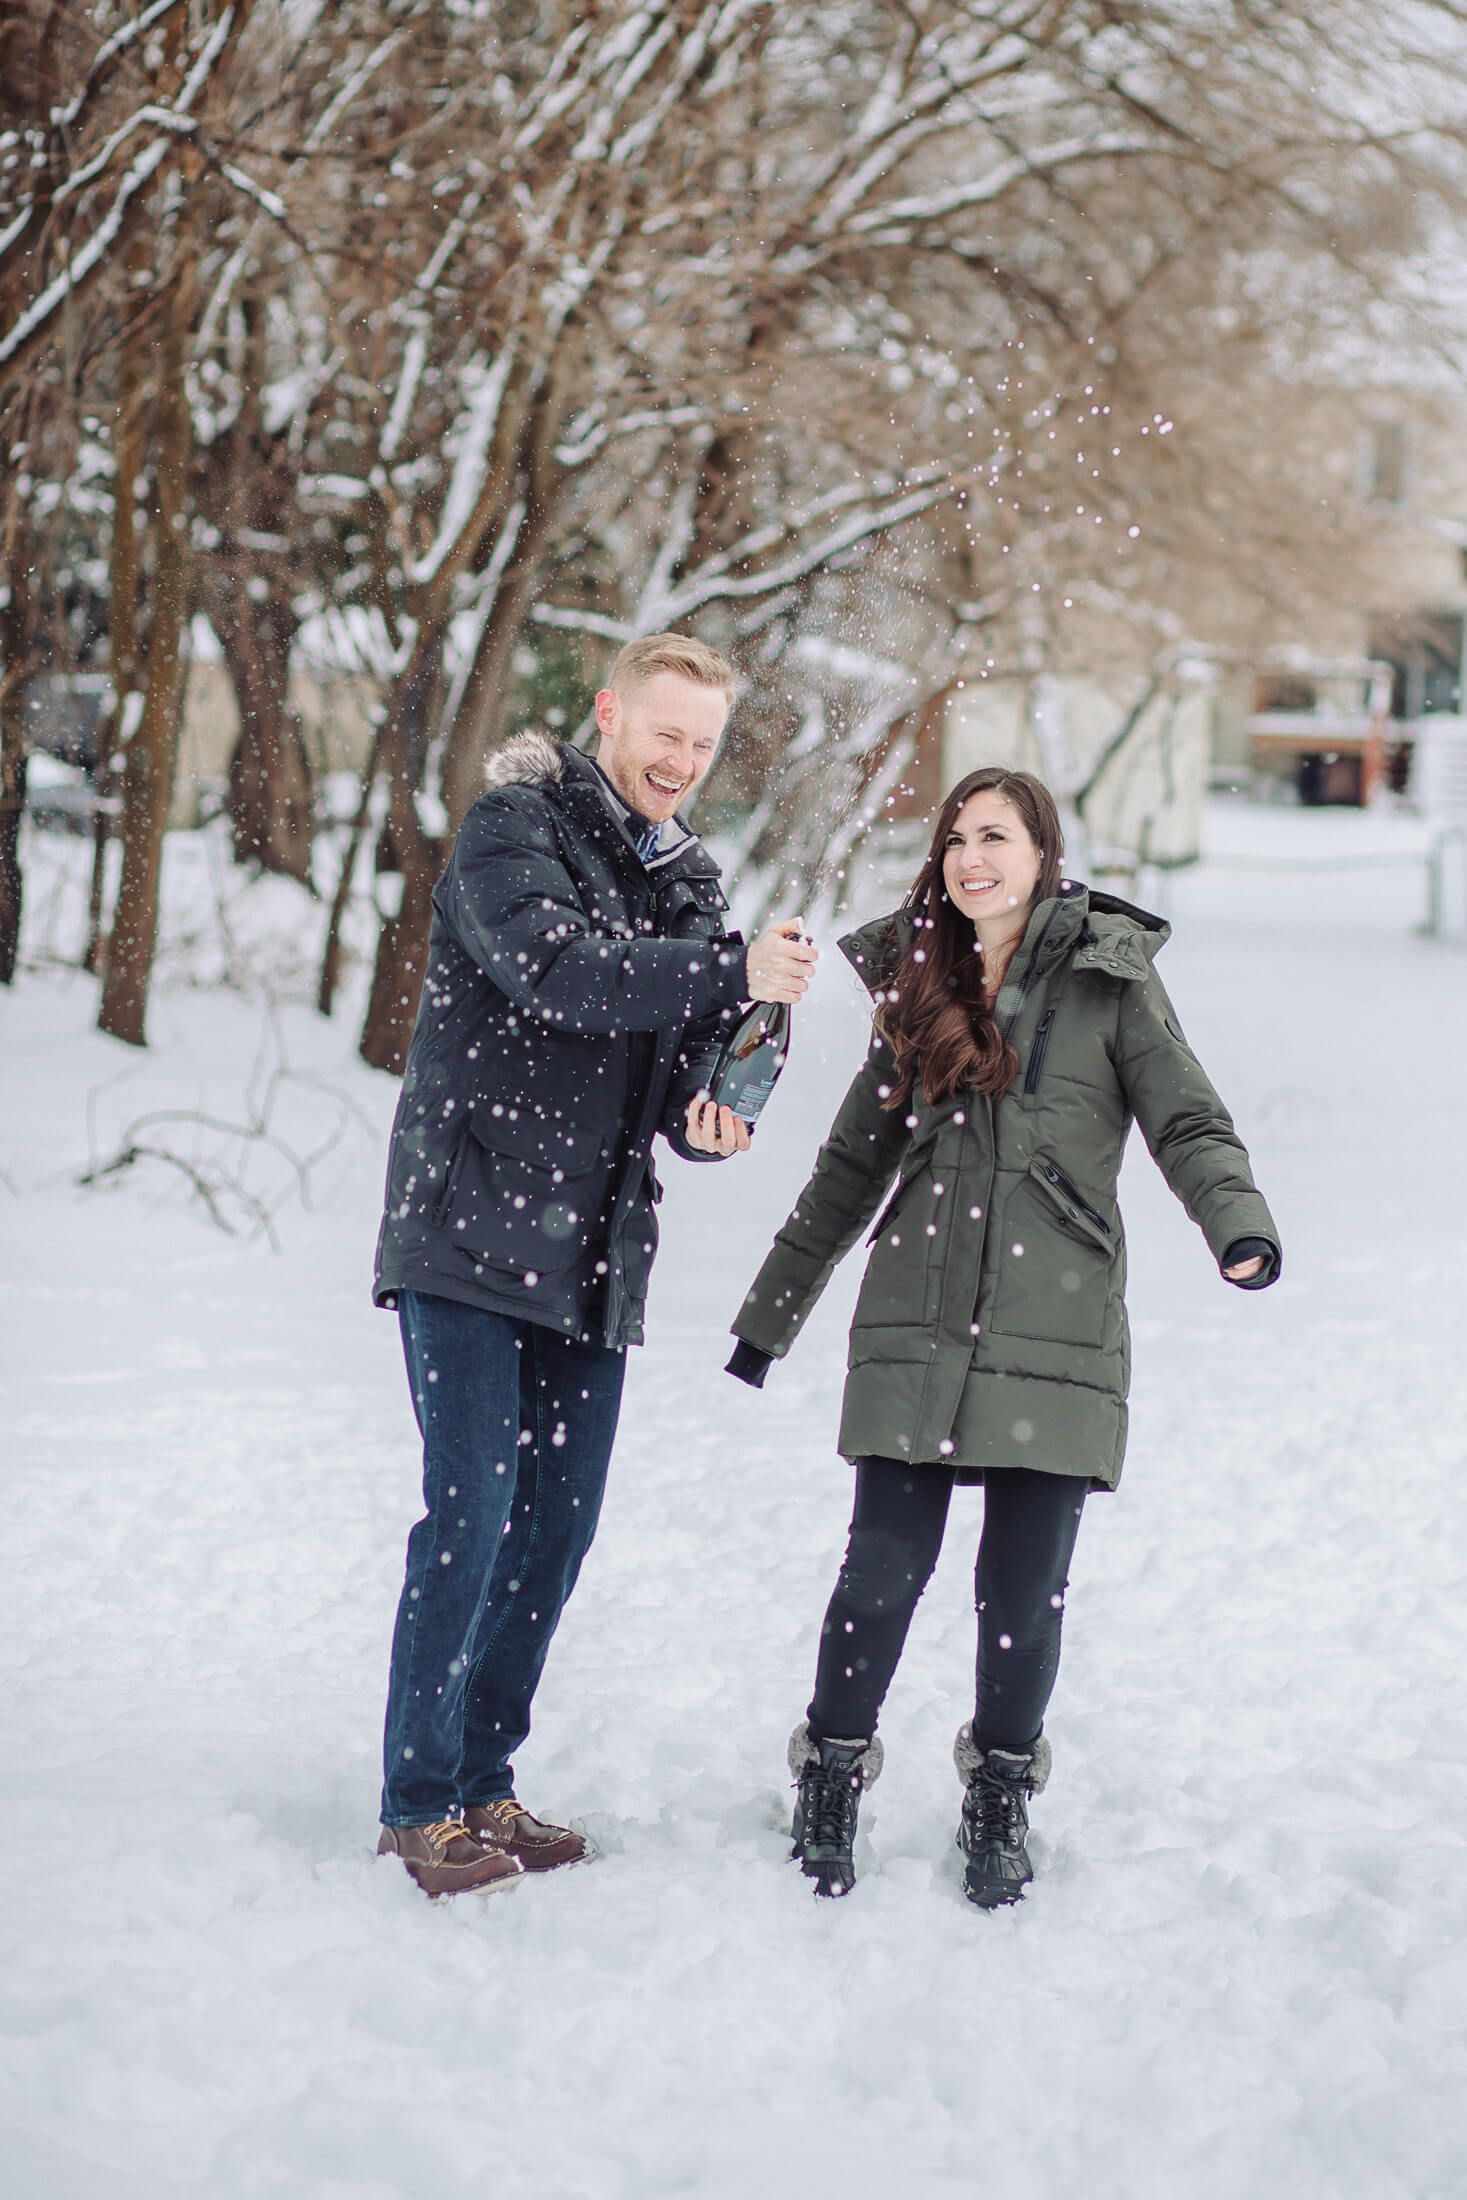 Champagne pop winter engagement photography in Collingswood, NJ.